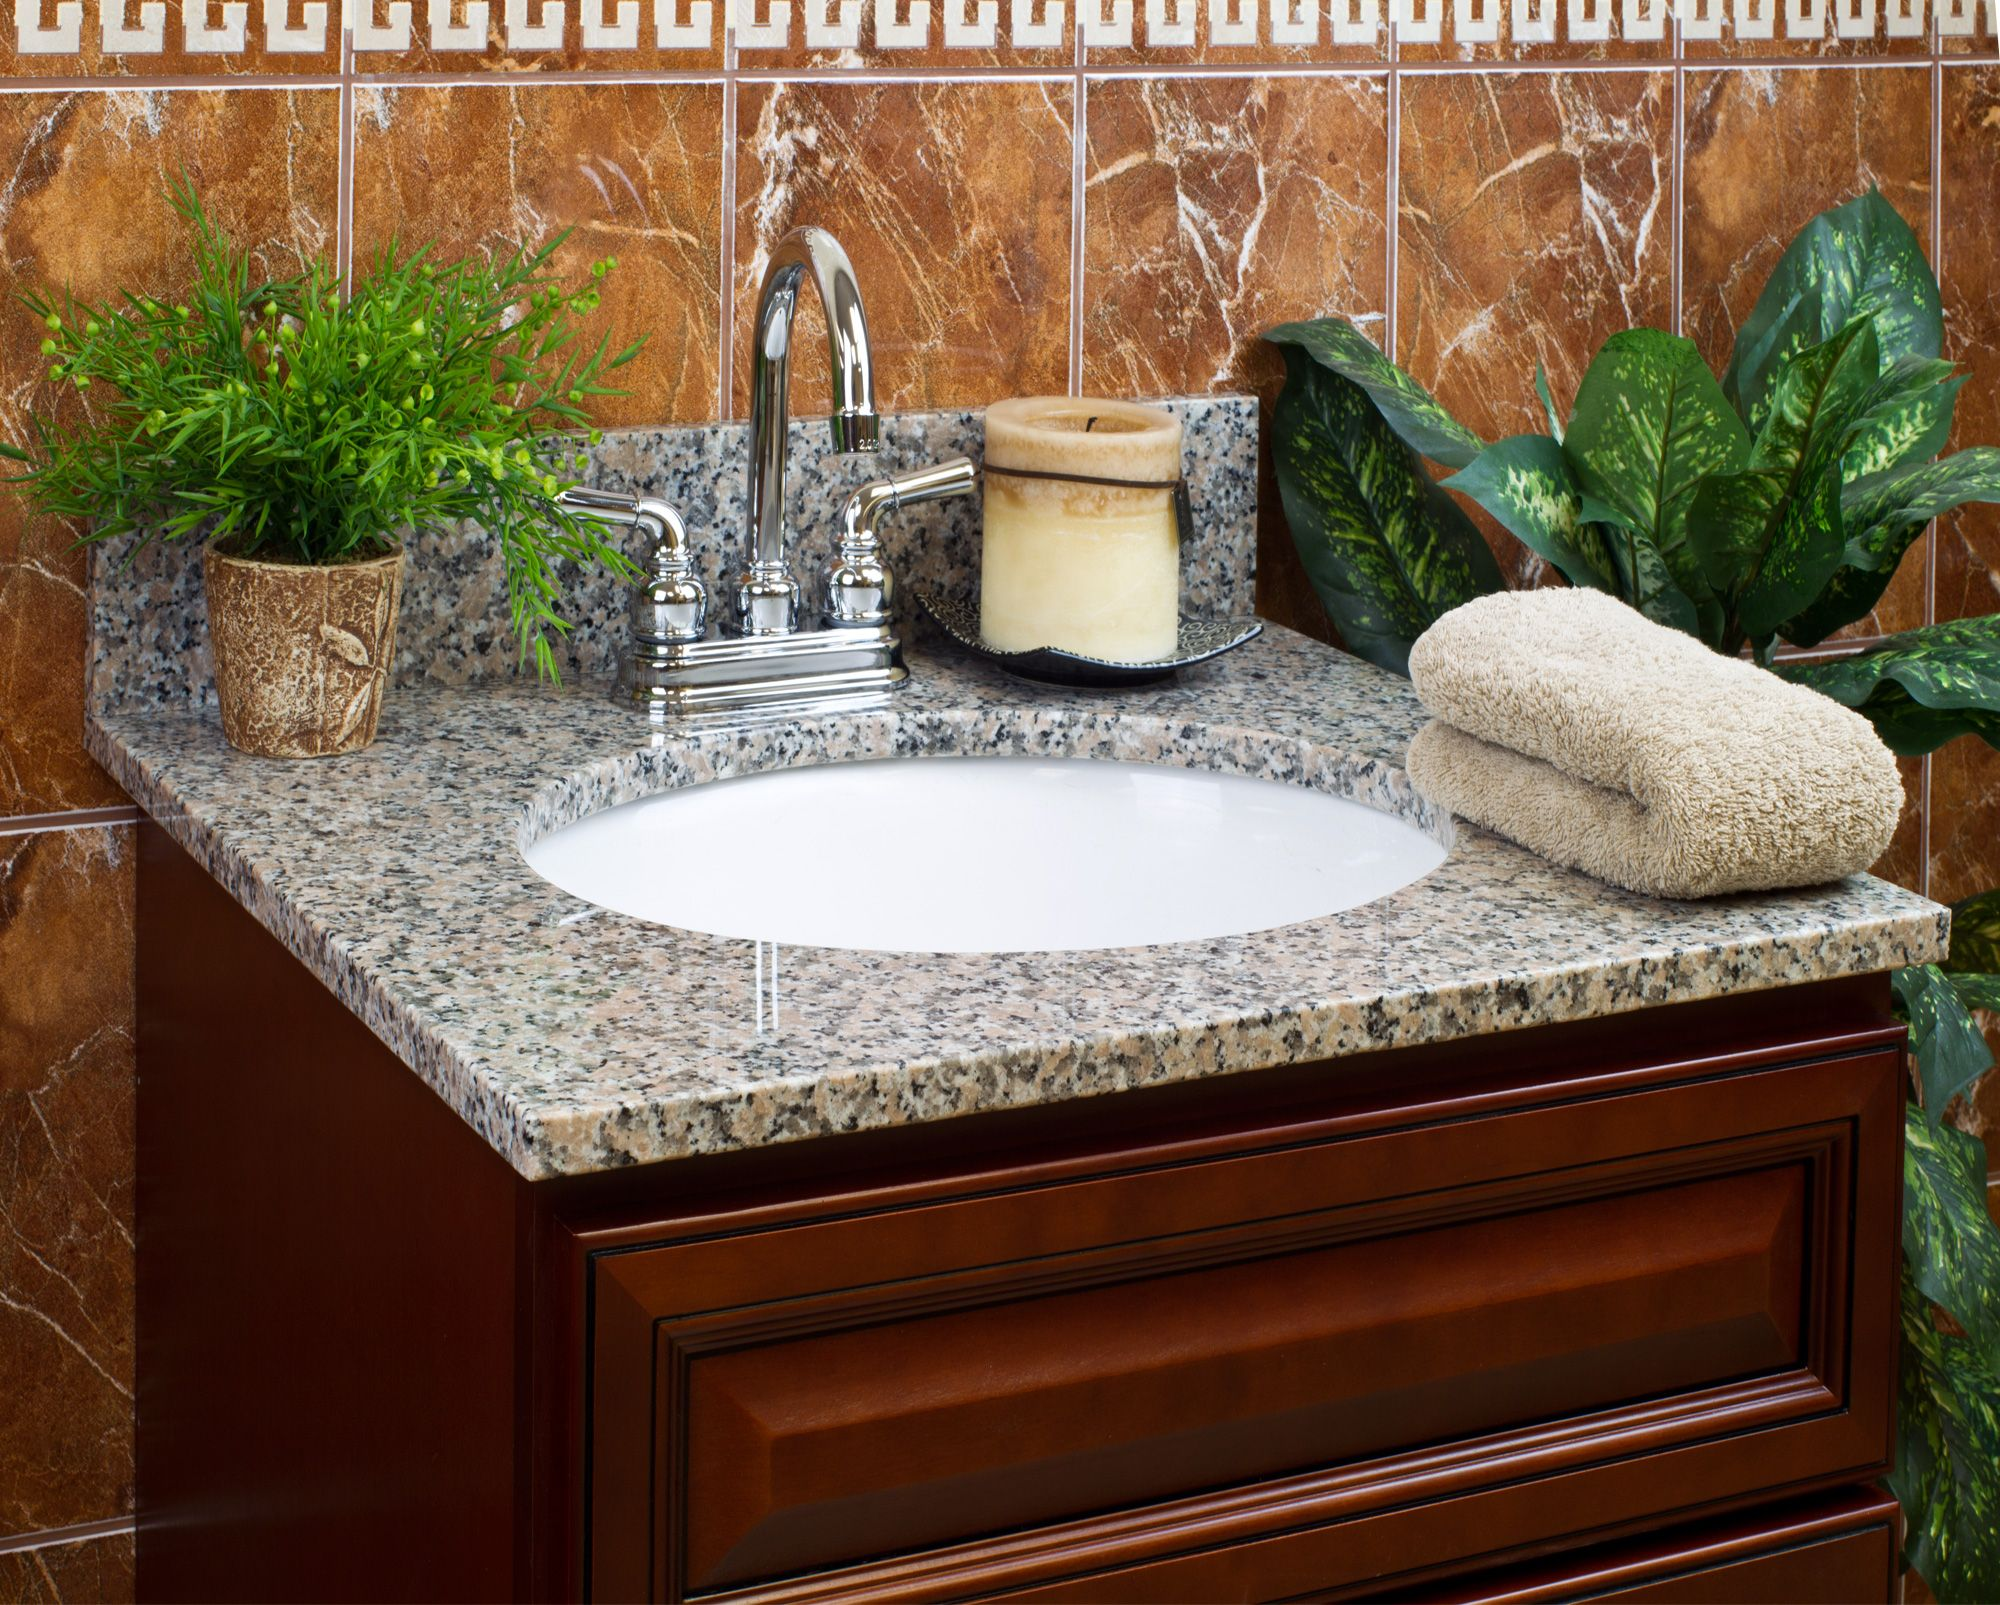 Burlywood Granite Vanity Top 4 Or 8 In Faucet Spread 3